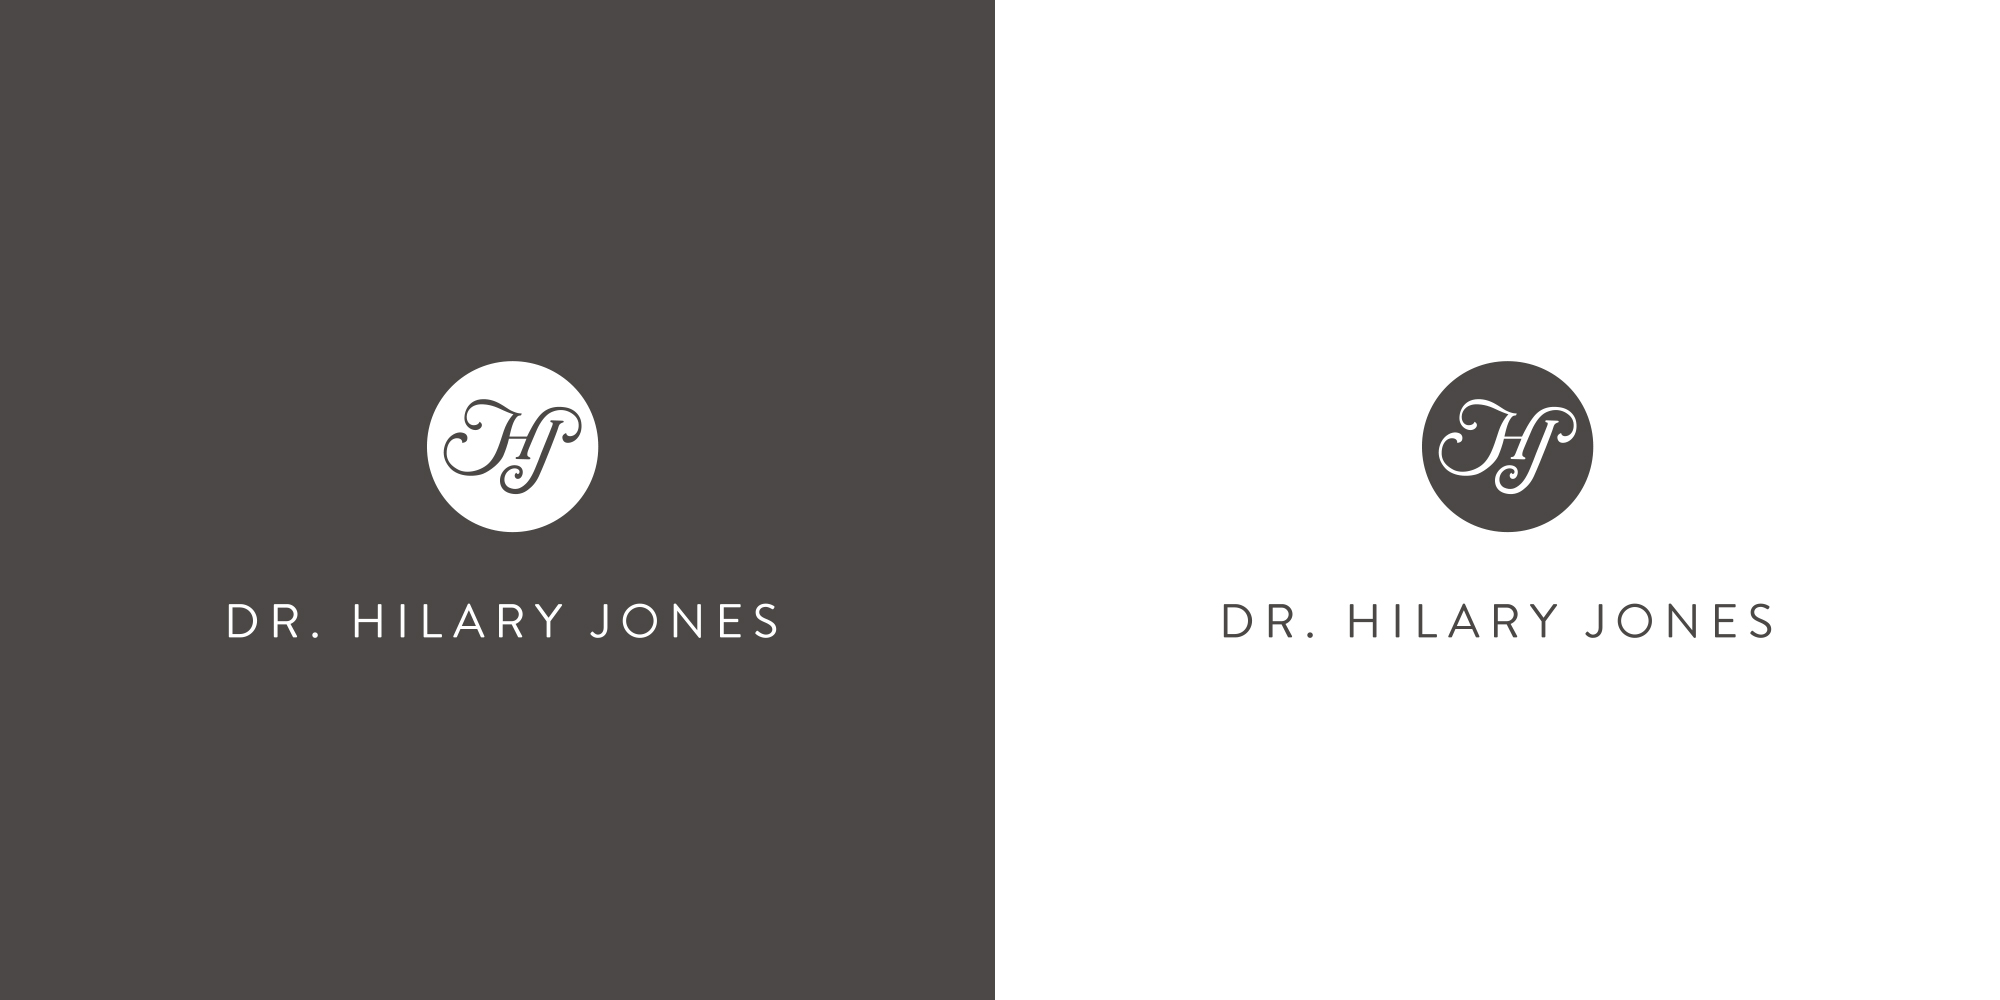 Dr Hilary Jones hj logos